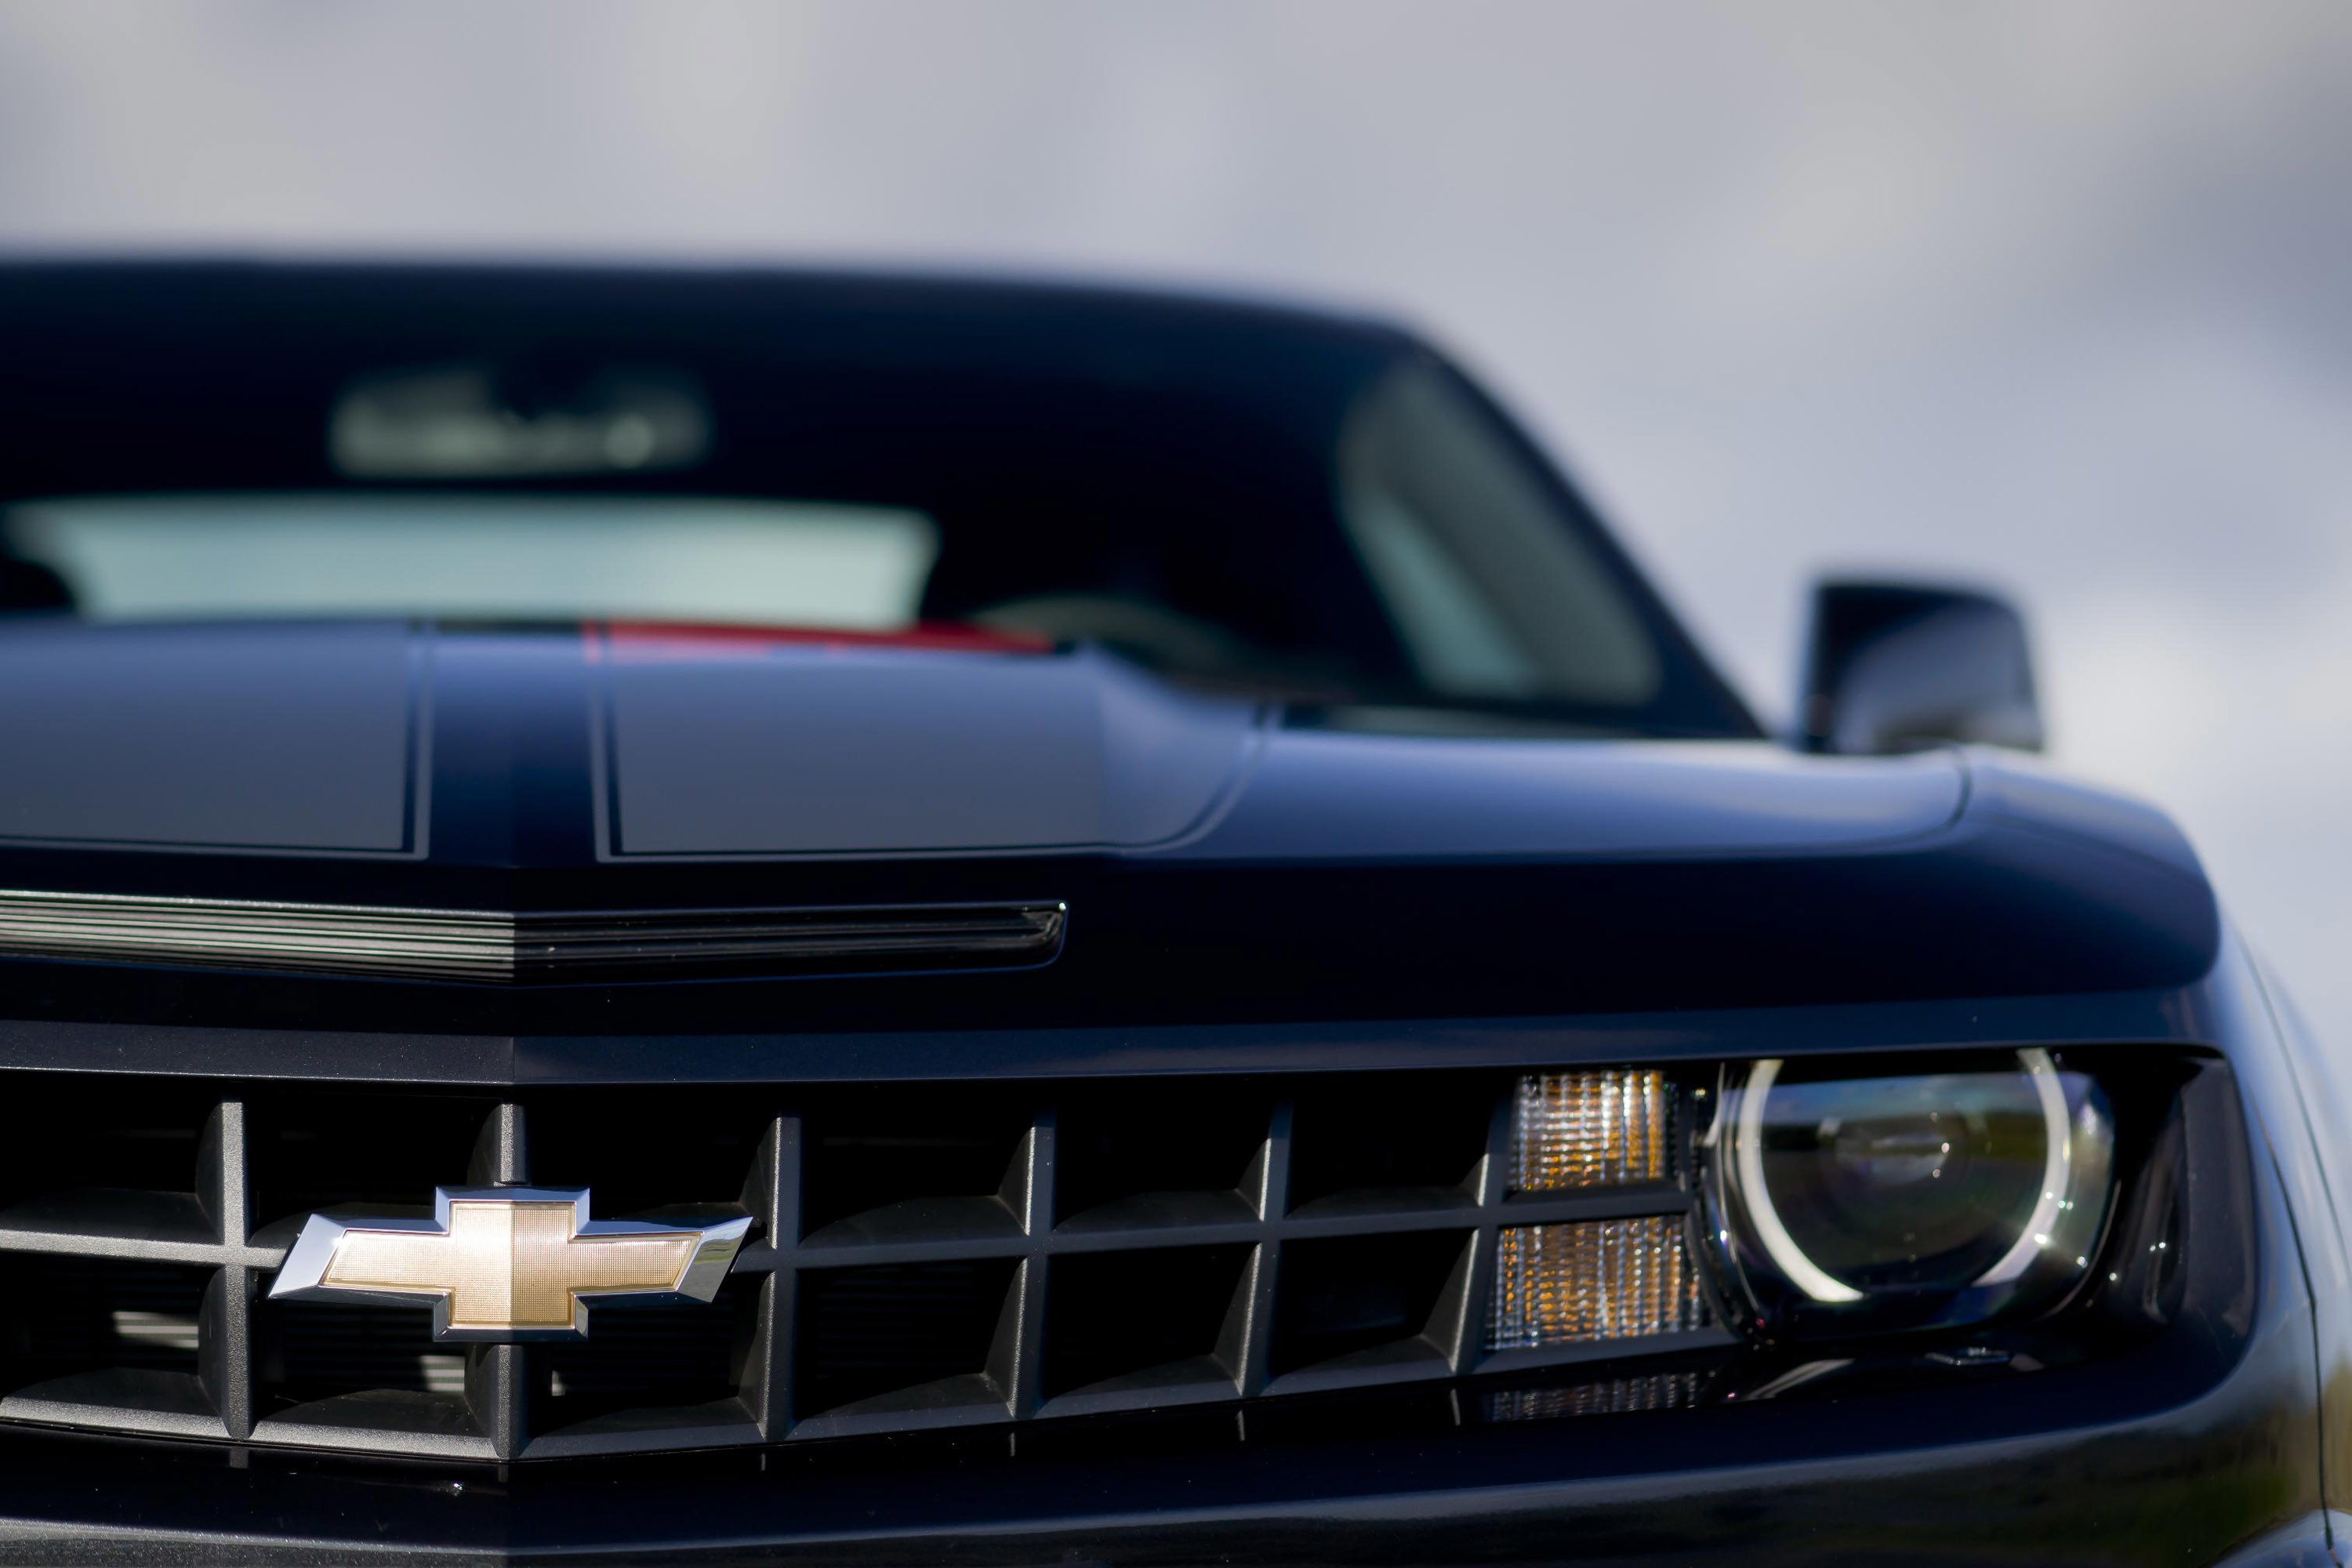 Muscle Car Wallpaper Iphone 6 Hd Chevy Logo Wallpapers 69 Images